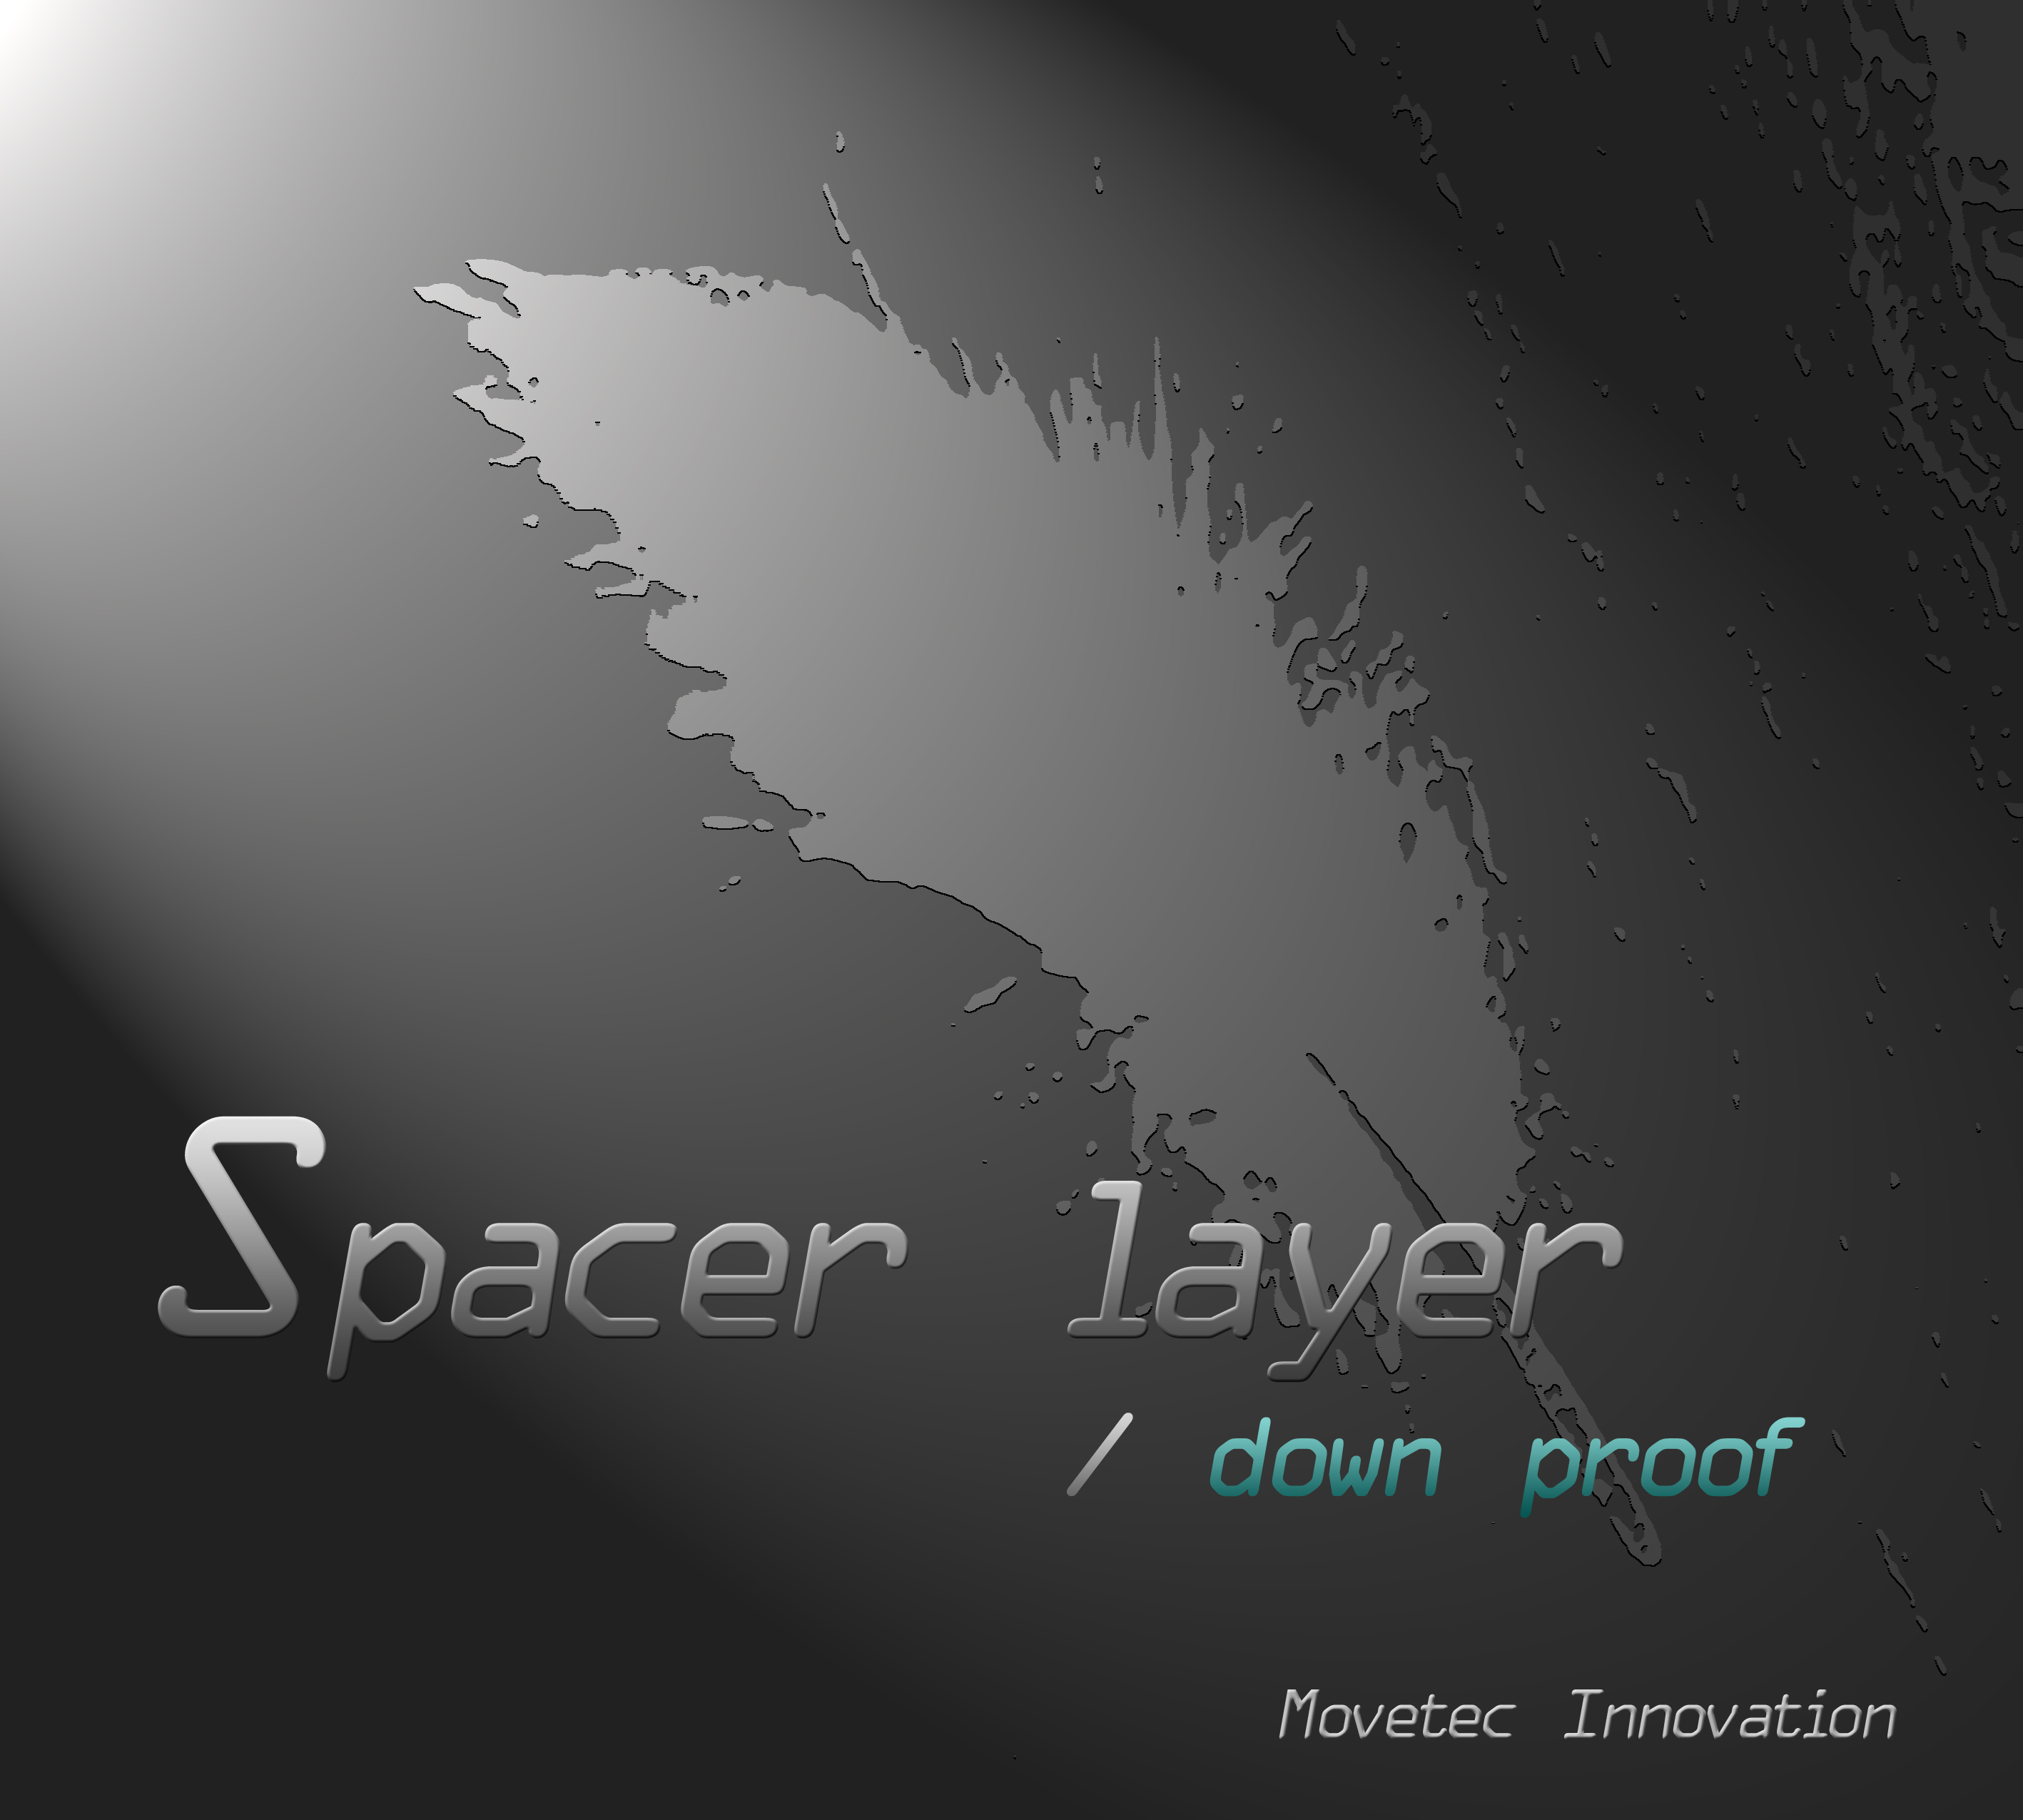 Spacer layer - Down proof